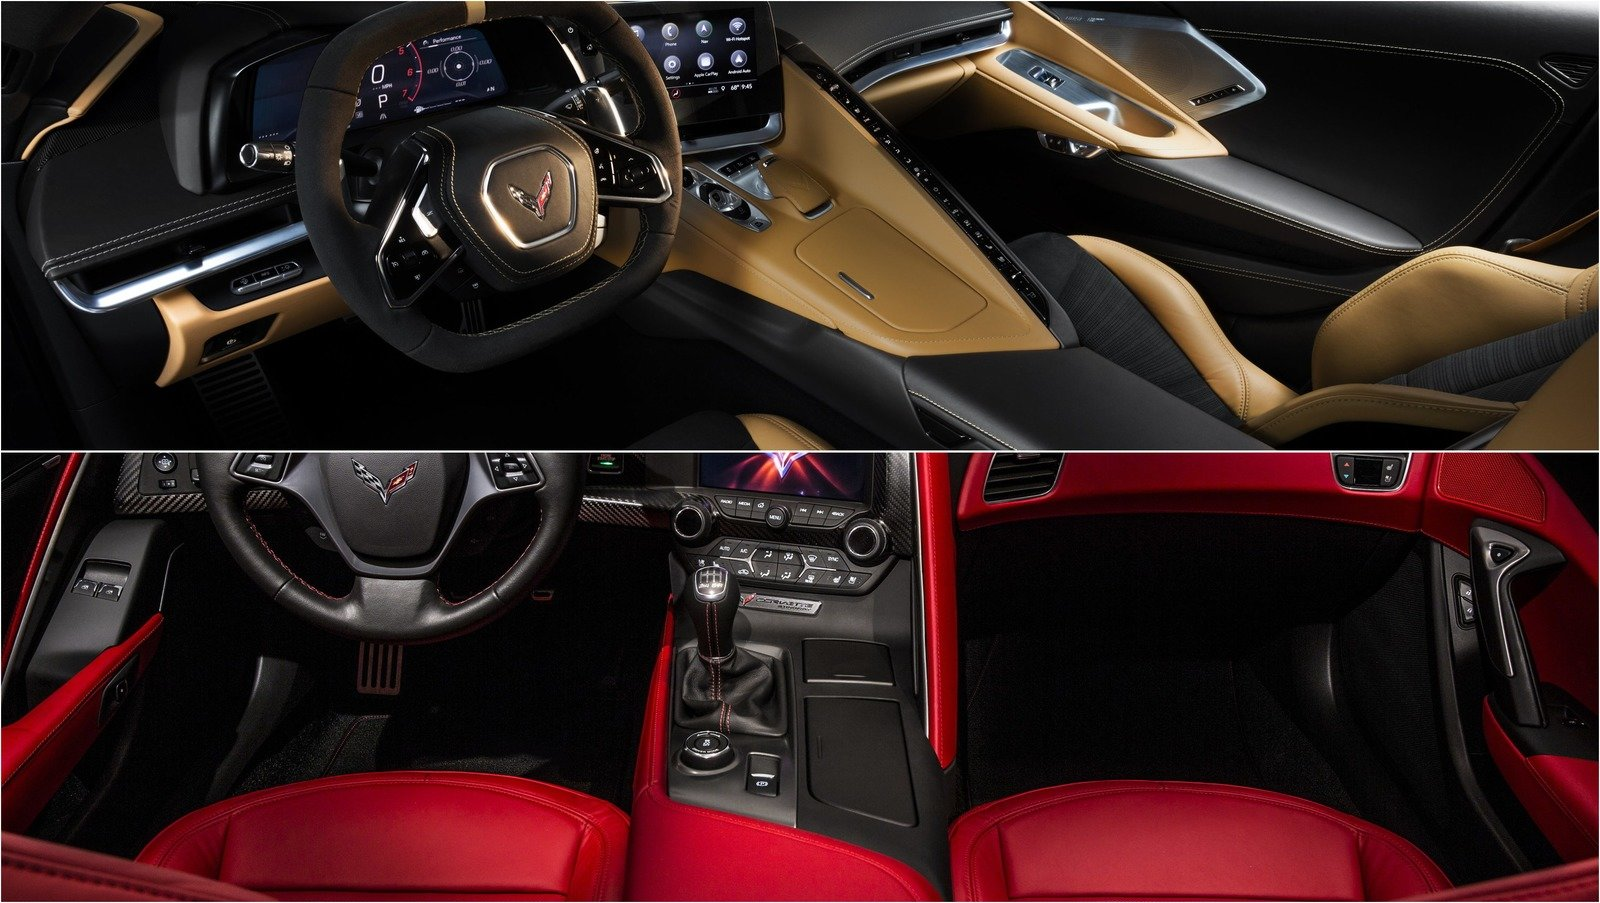 How Different Is The 2020 Chevy C8 Corvette's Interior ...